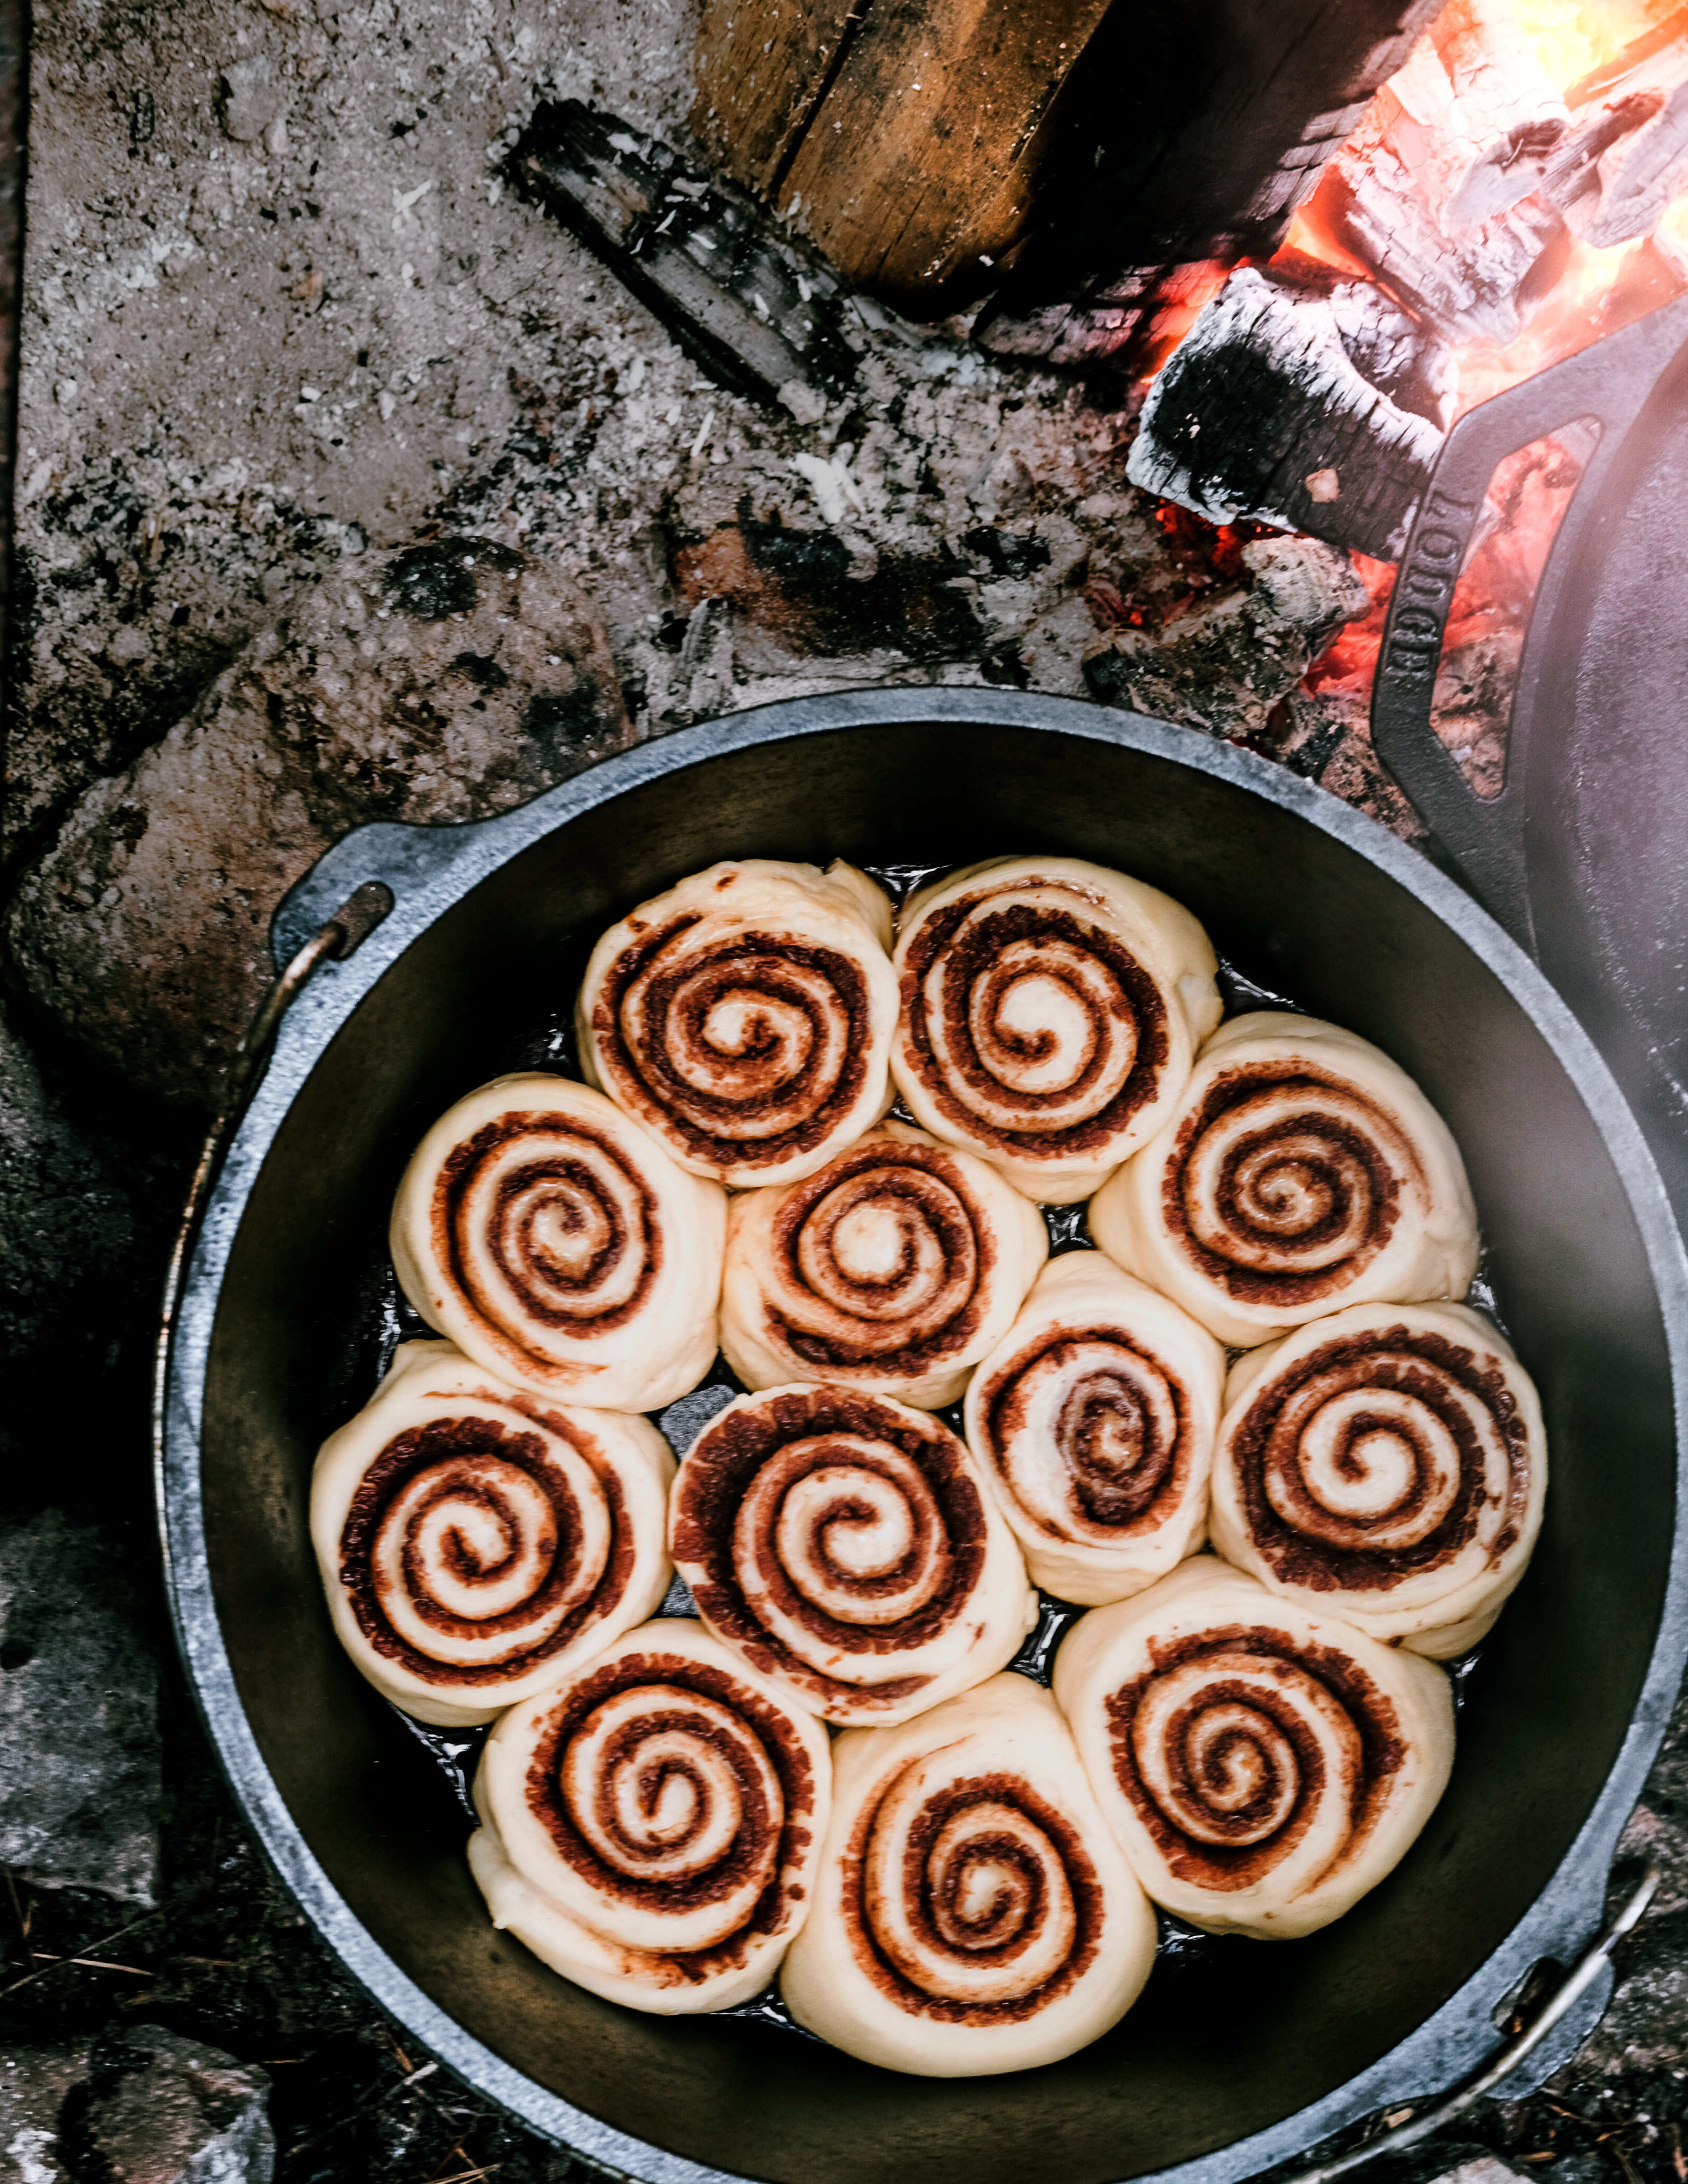 Dutch Oven Cinnamon Rolls with Orange Almond Icing